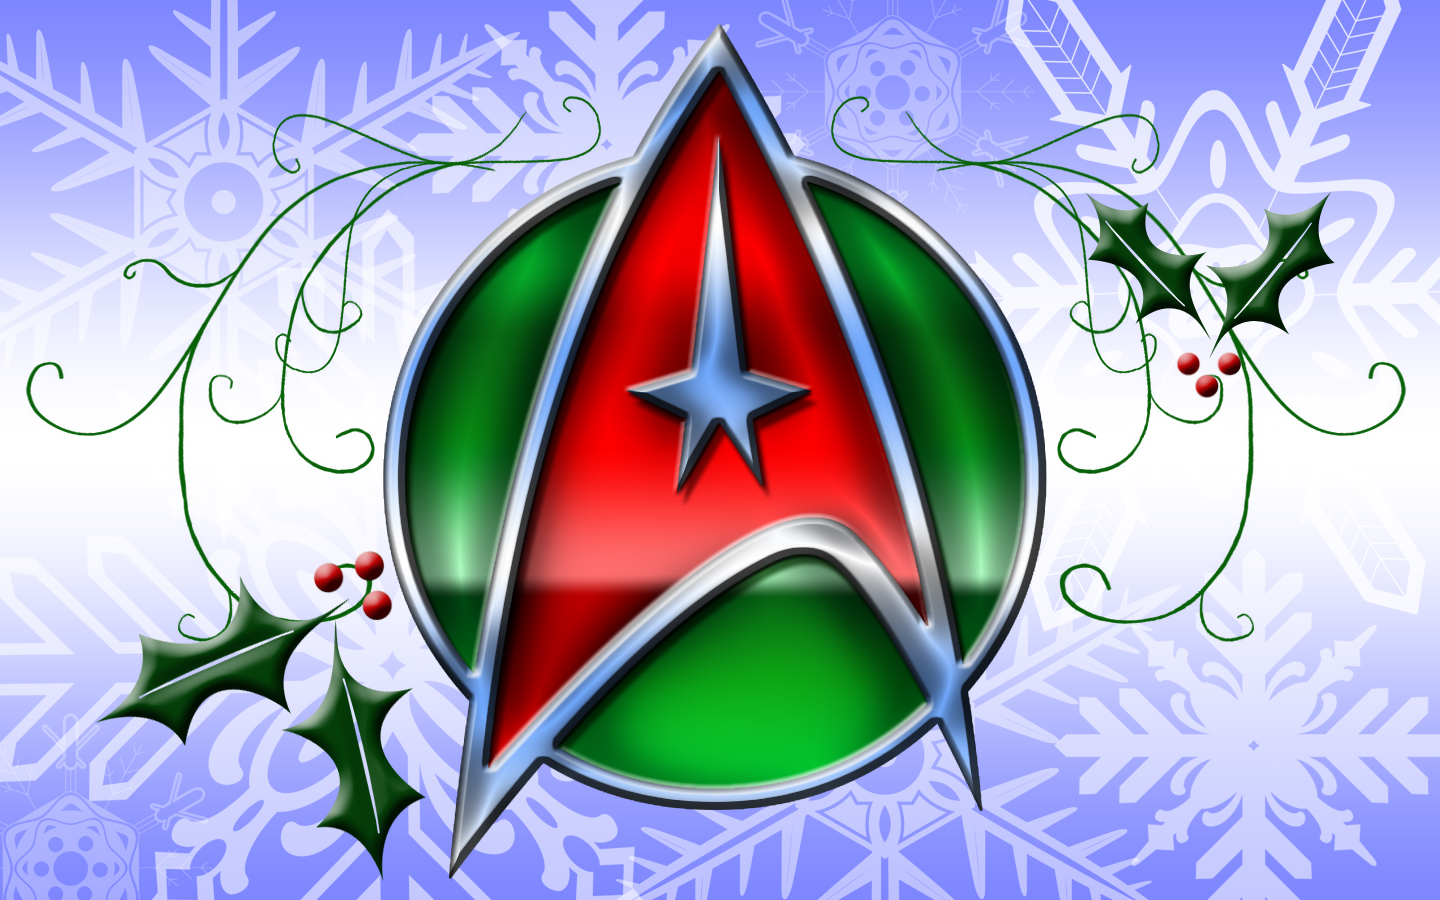 Star Trek images «Starfleet logo» [ «United Federation of Planets» ] [ «New Year - Version» ] HD wallpaper and background photos